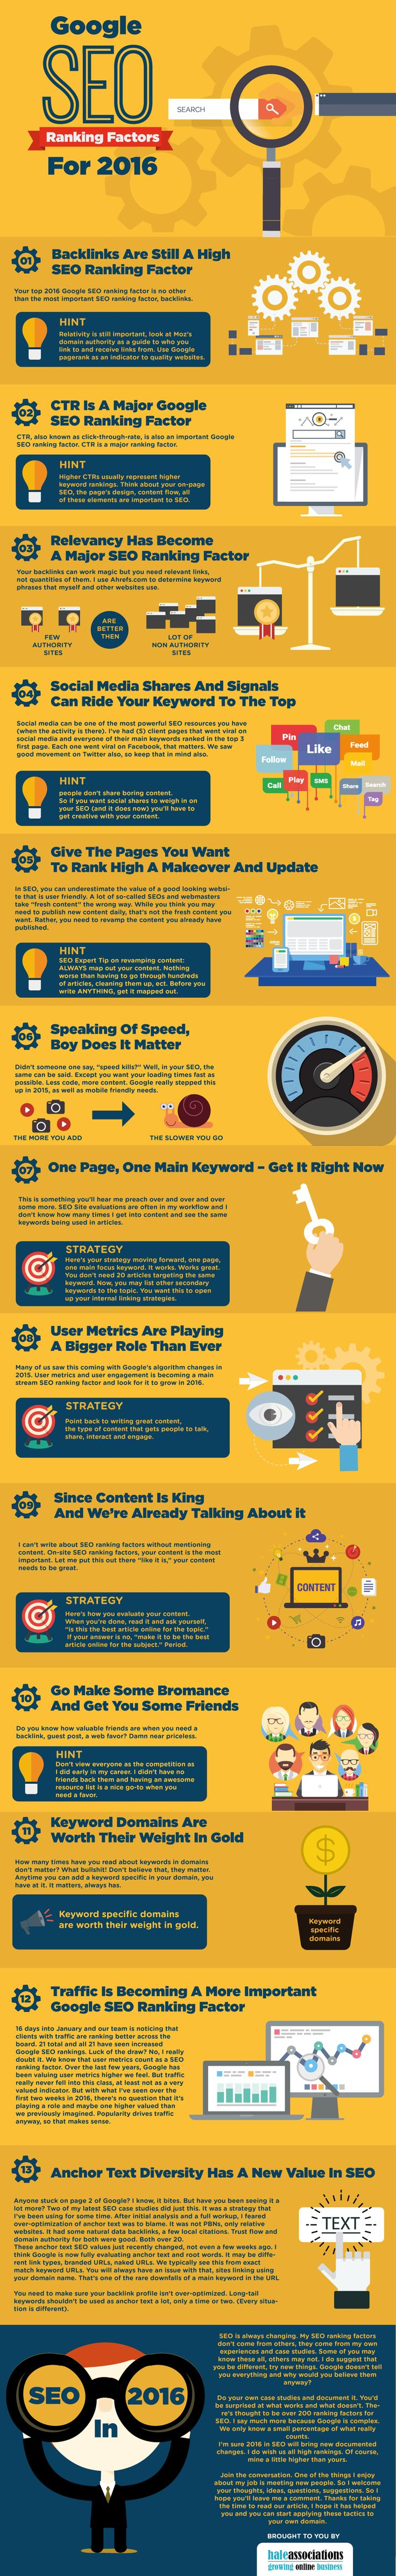 Google SEO Ranking Factors for 2016 #Infographic.                                                                                                                                                                                 More